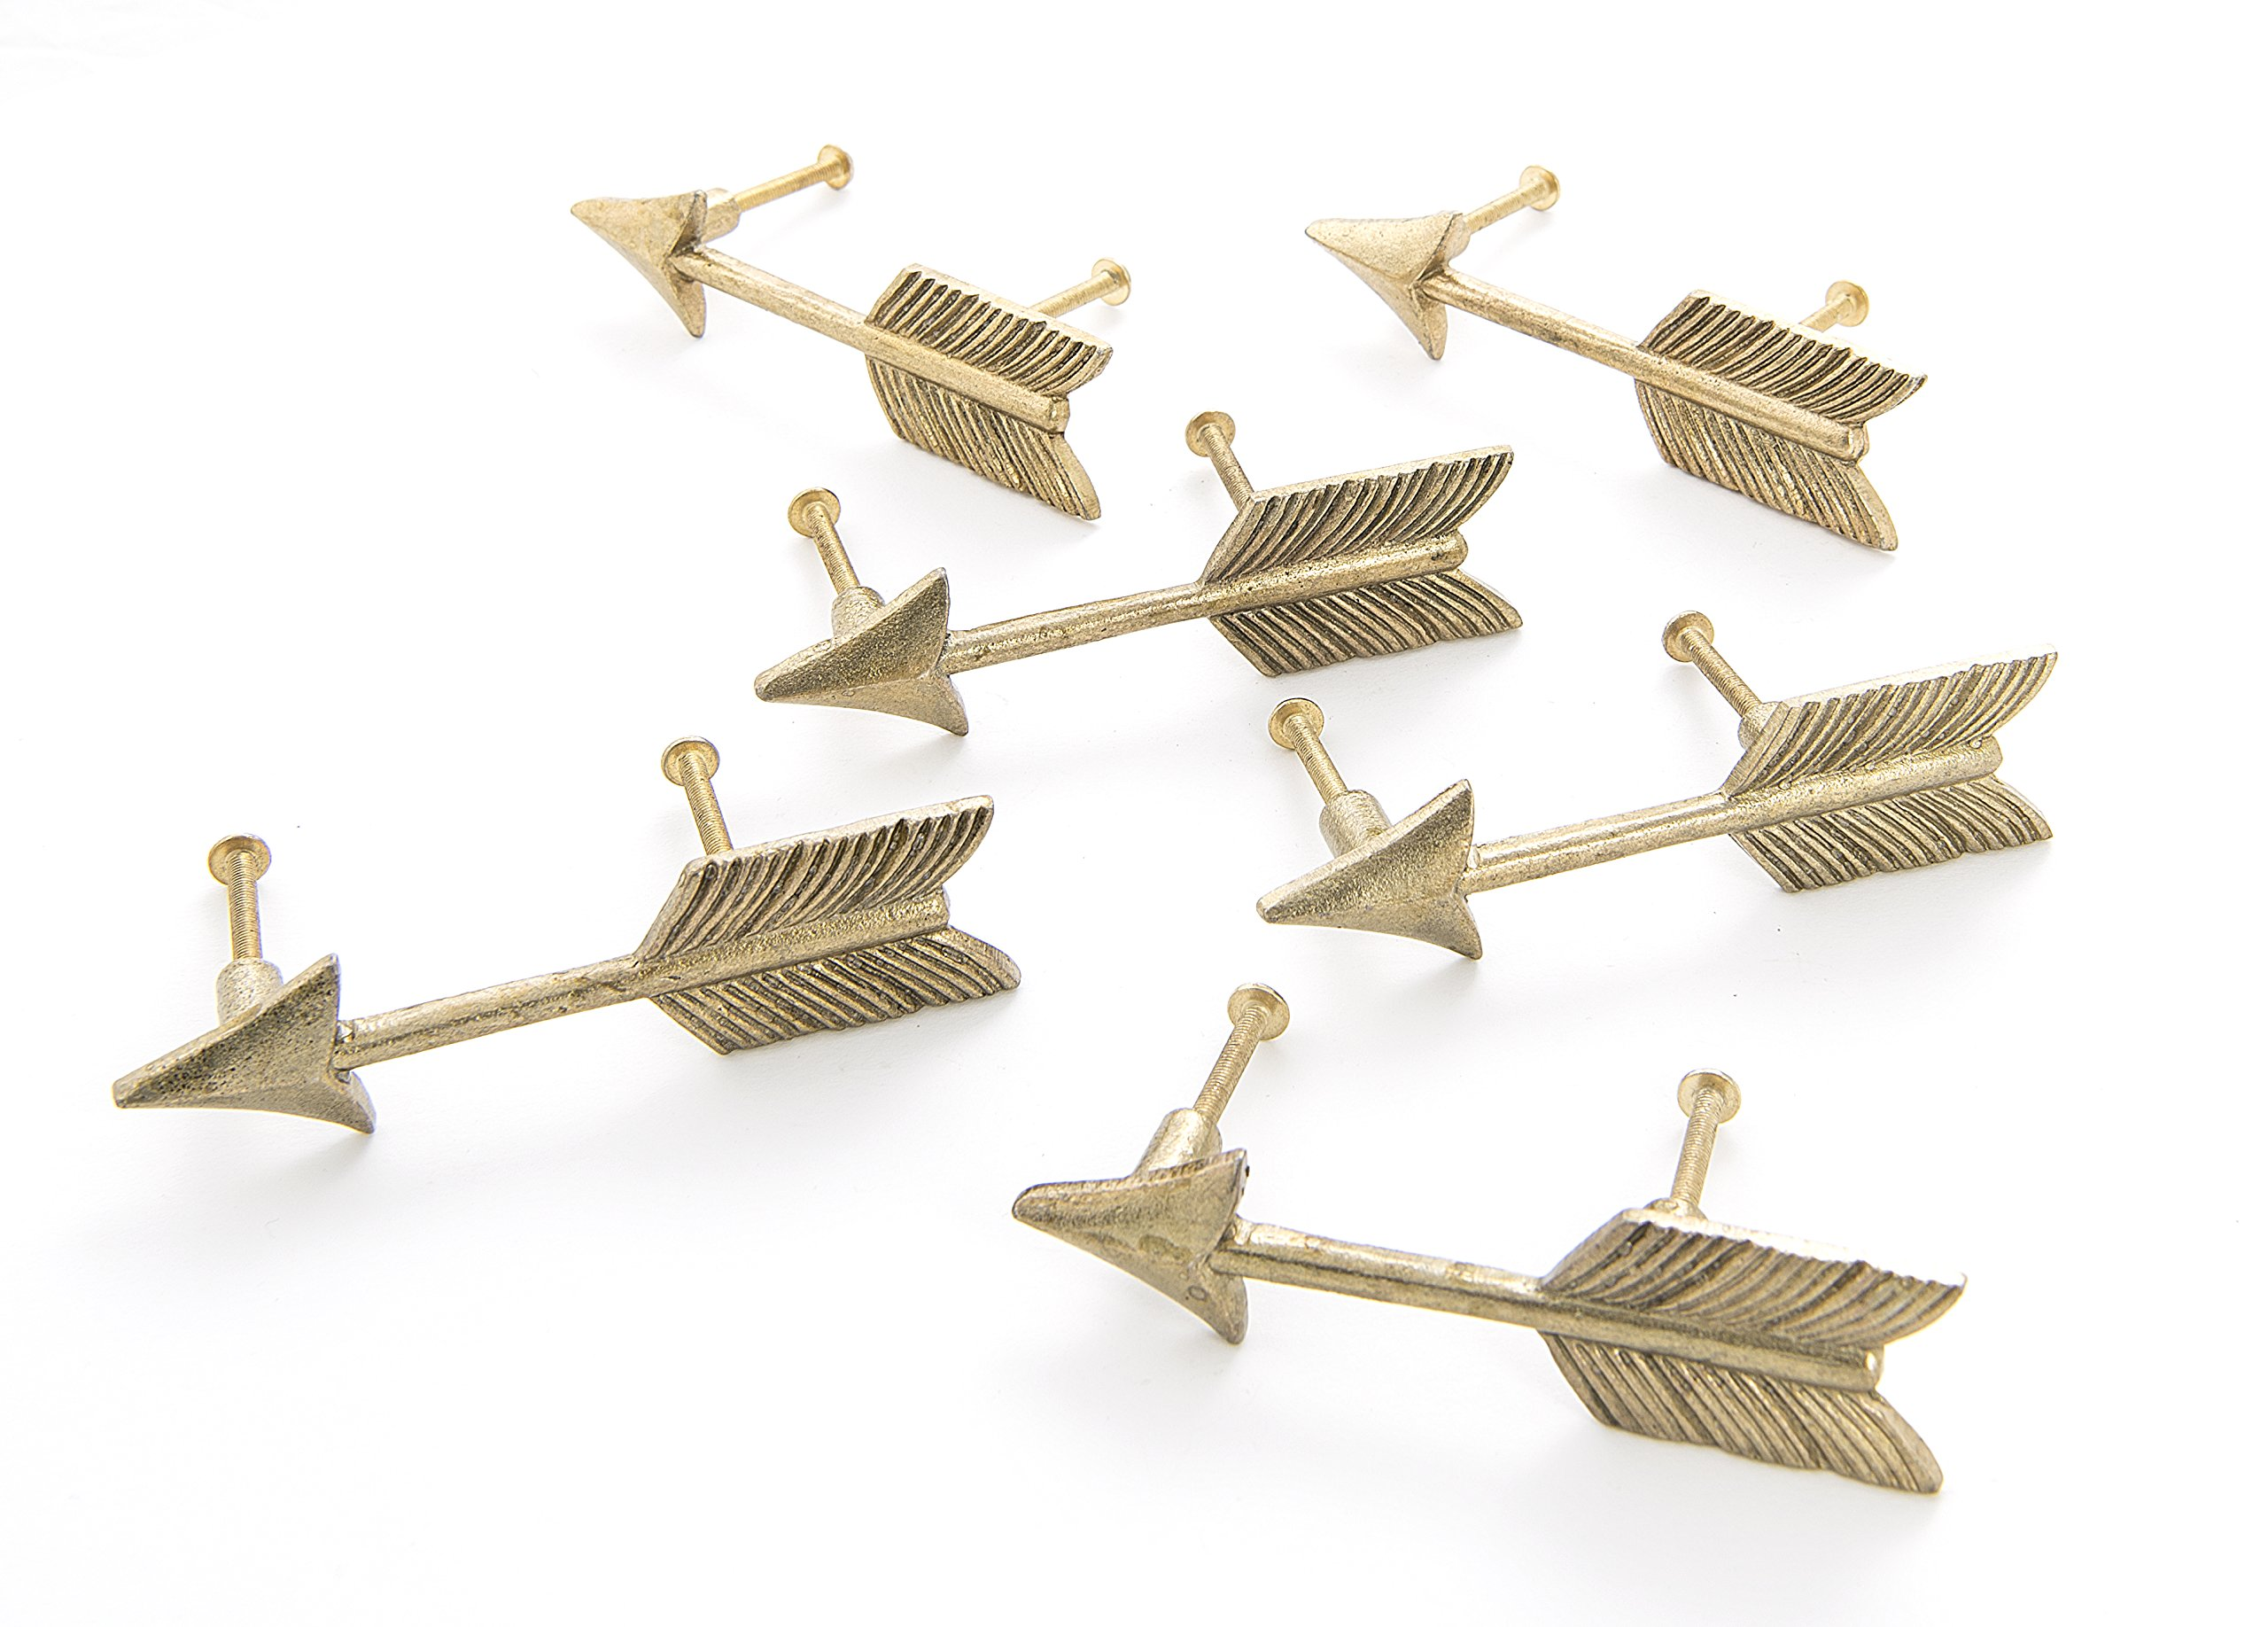 Dritz Home 47078A Metal Arrow Drawer Pull Handcrafted Pulls for Cabinets & Drawers by Dritz